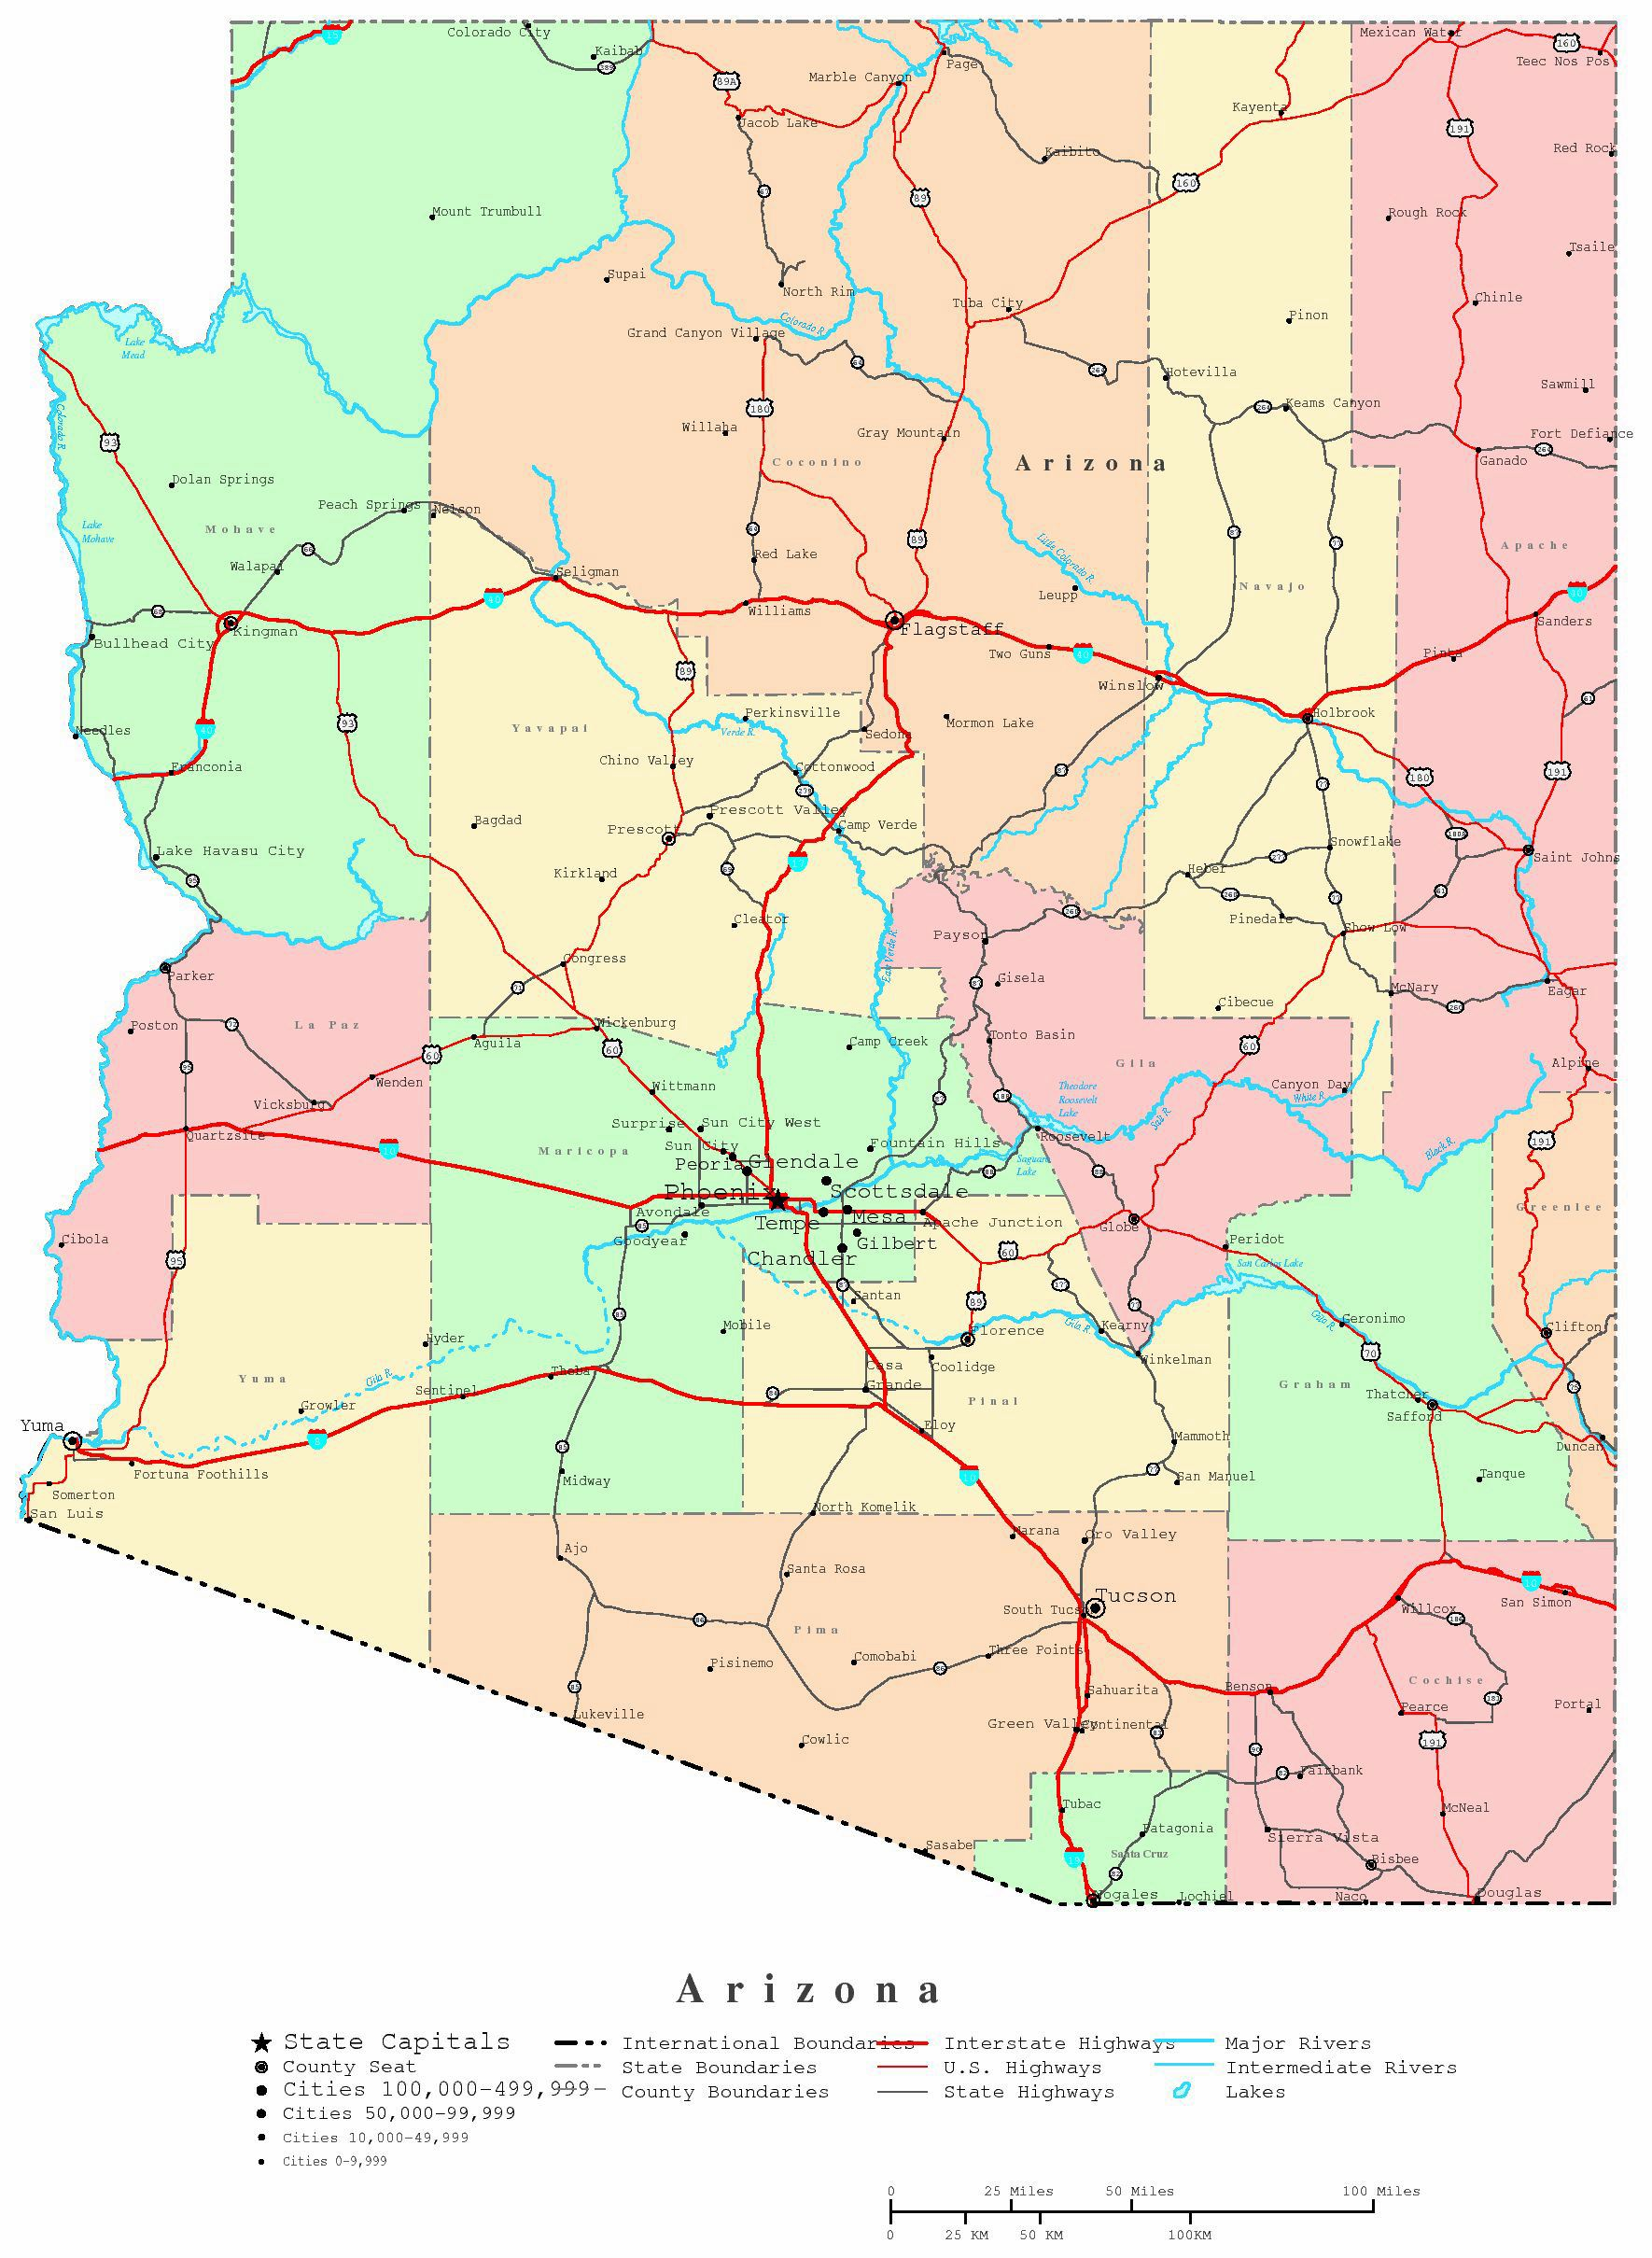 Map Of Arizona Towns And Cities.Large Arizona Maps For Free Download And Print High Resolution And